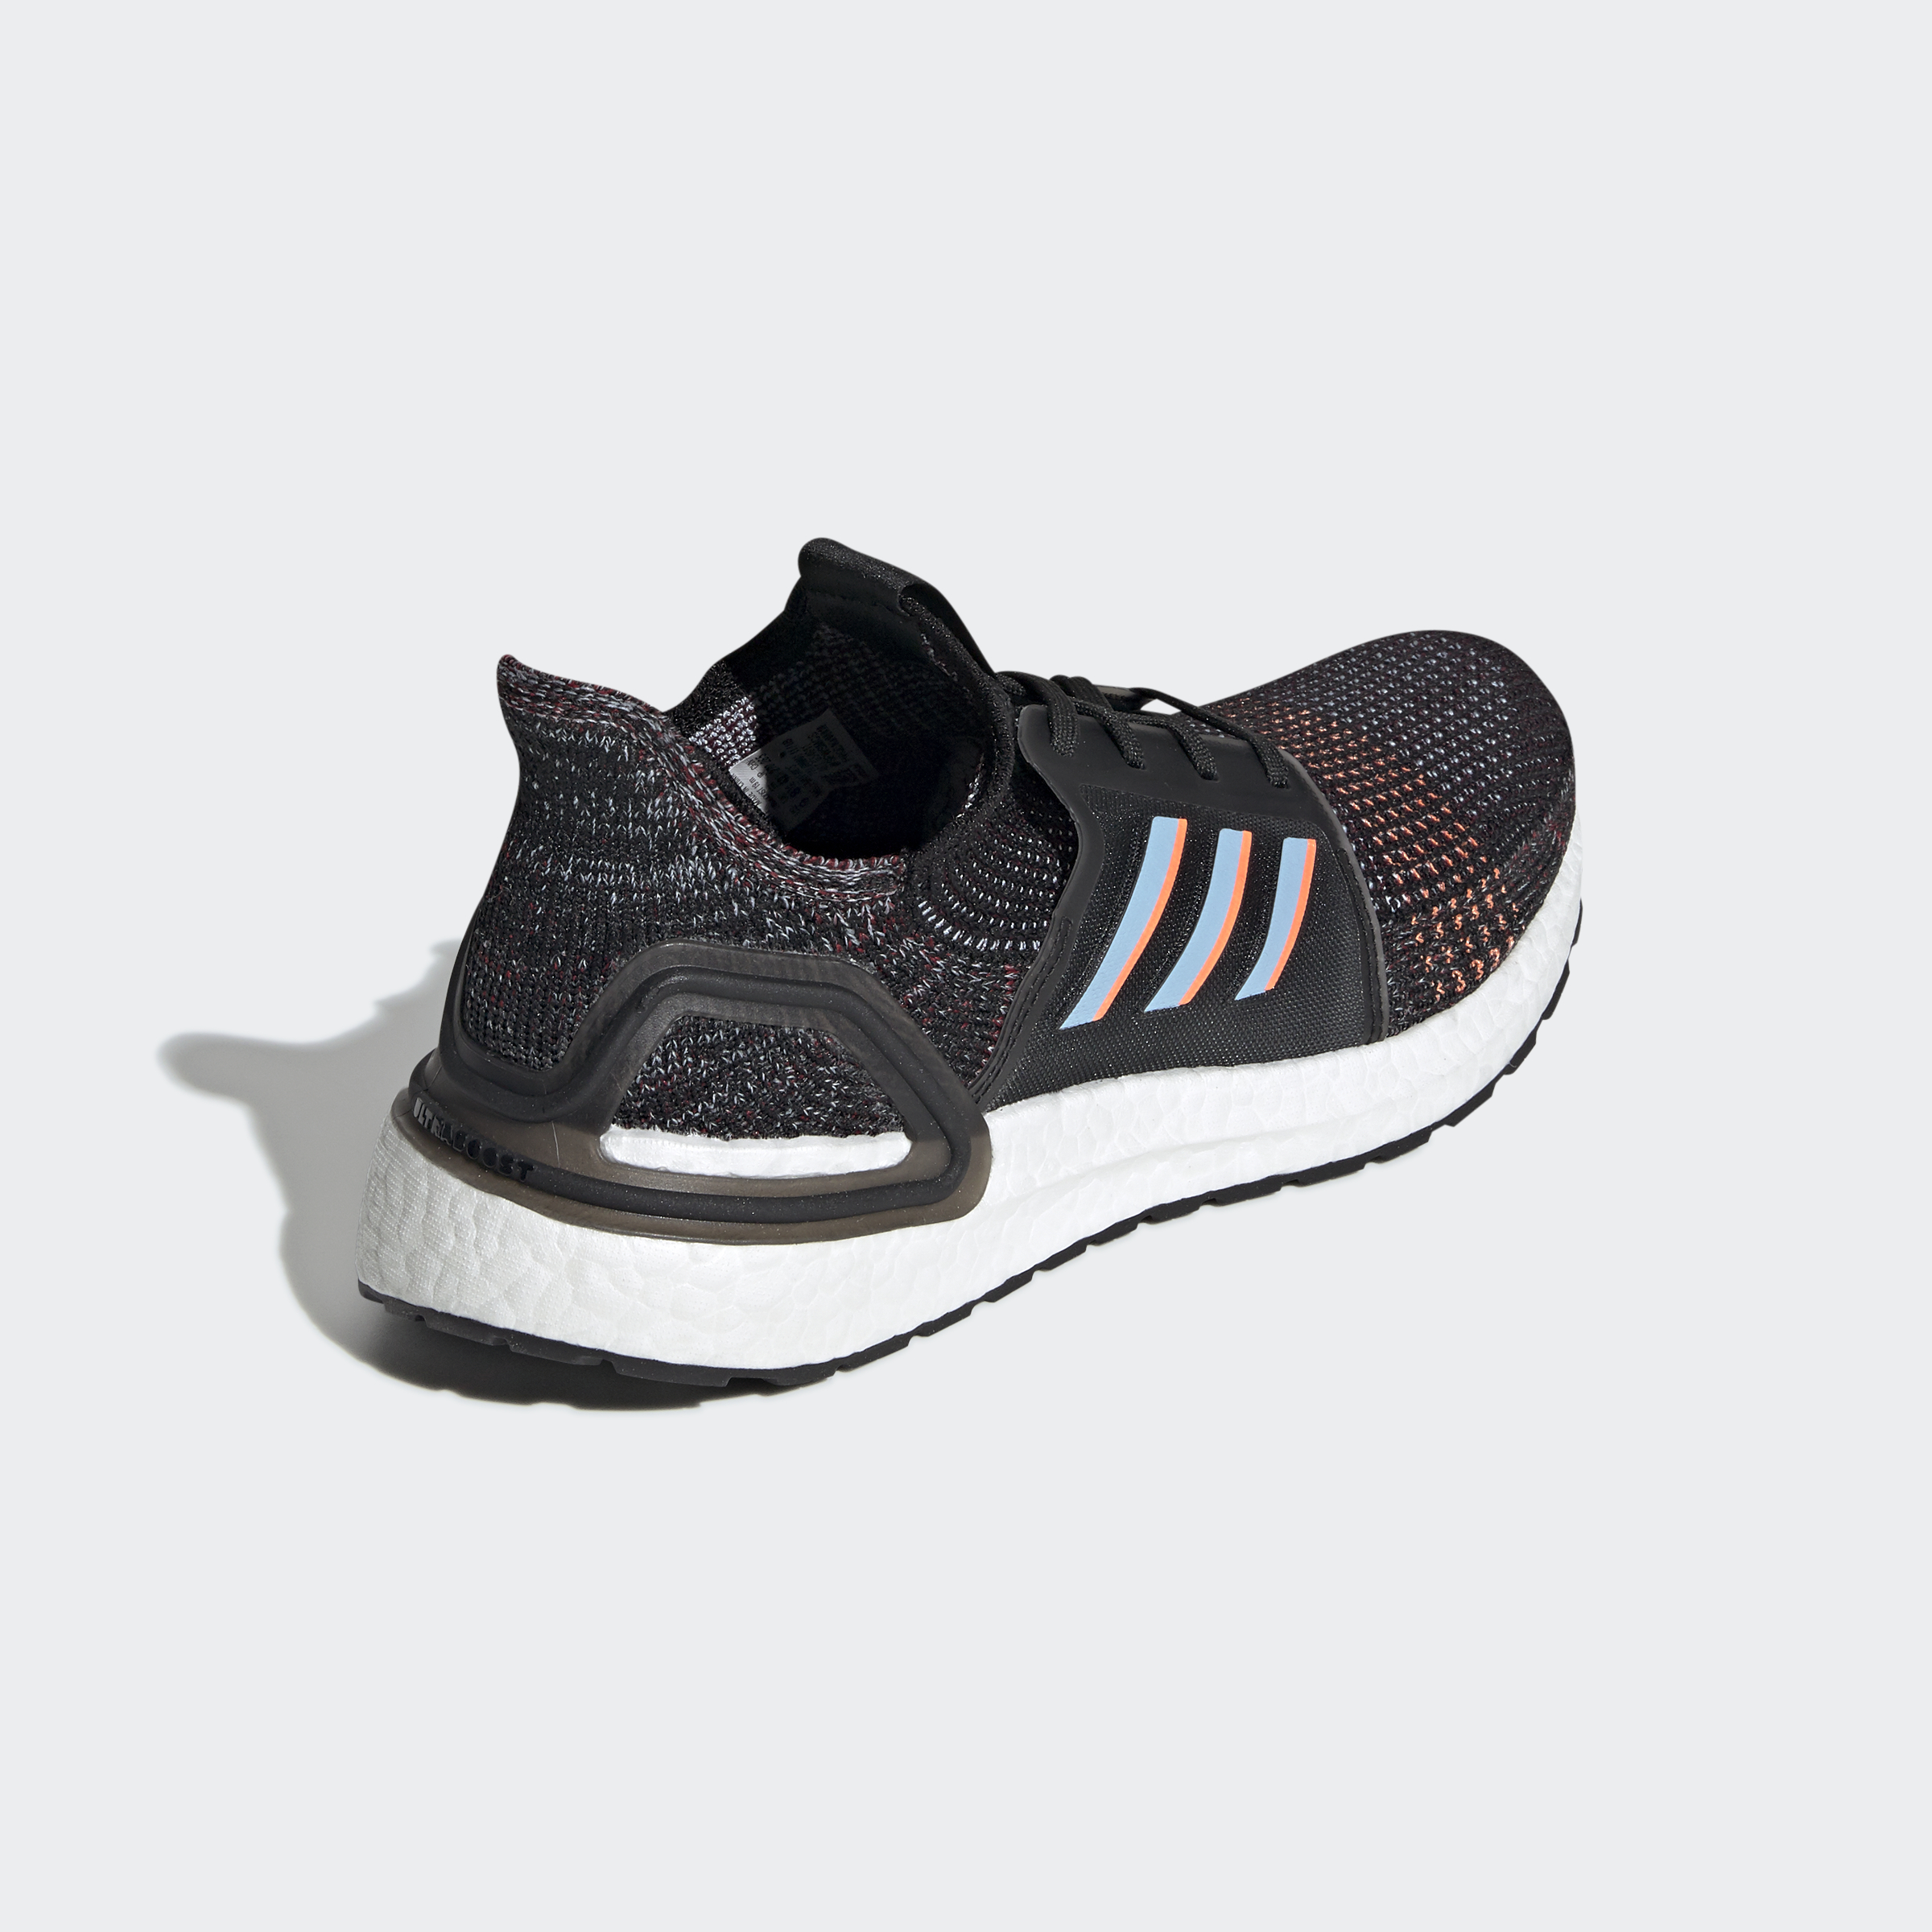 adidas-Ultraboost-19-Shoes-Athletic-amp-Sneakers thumbnail 129